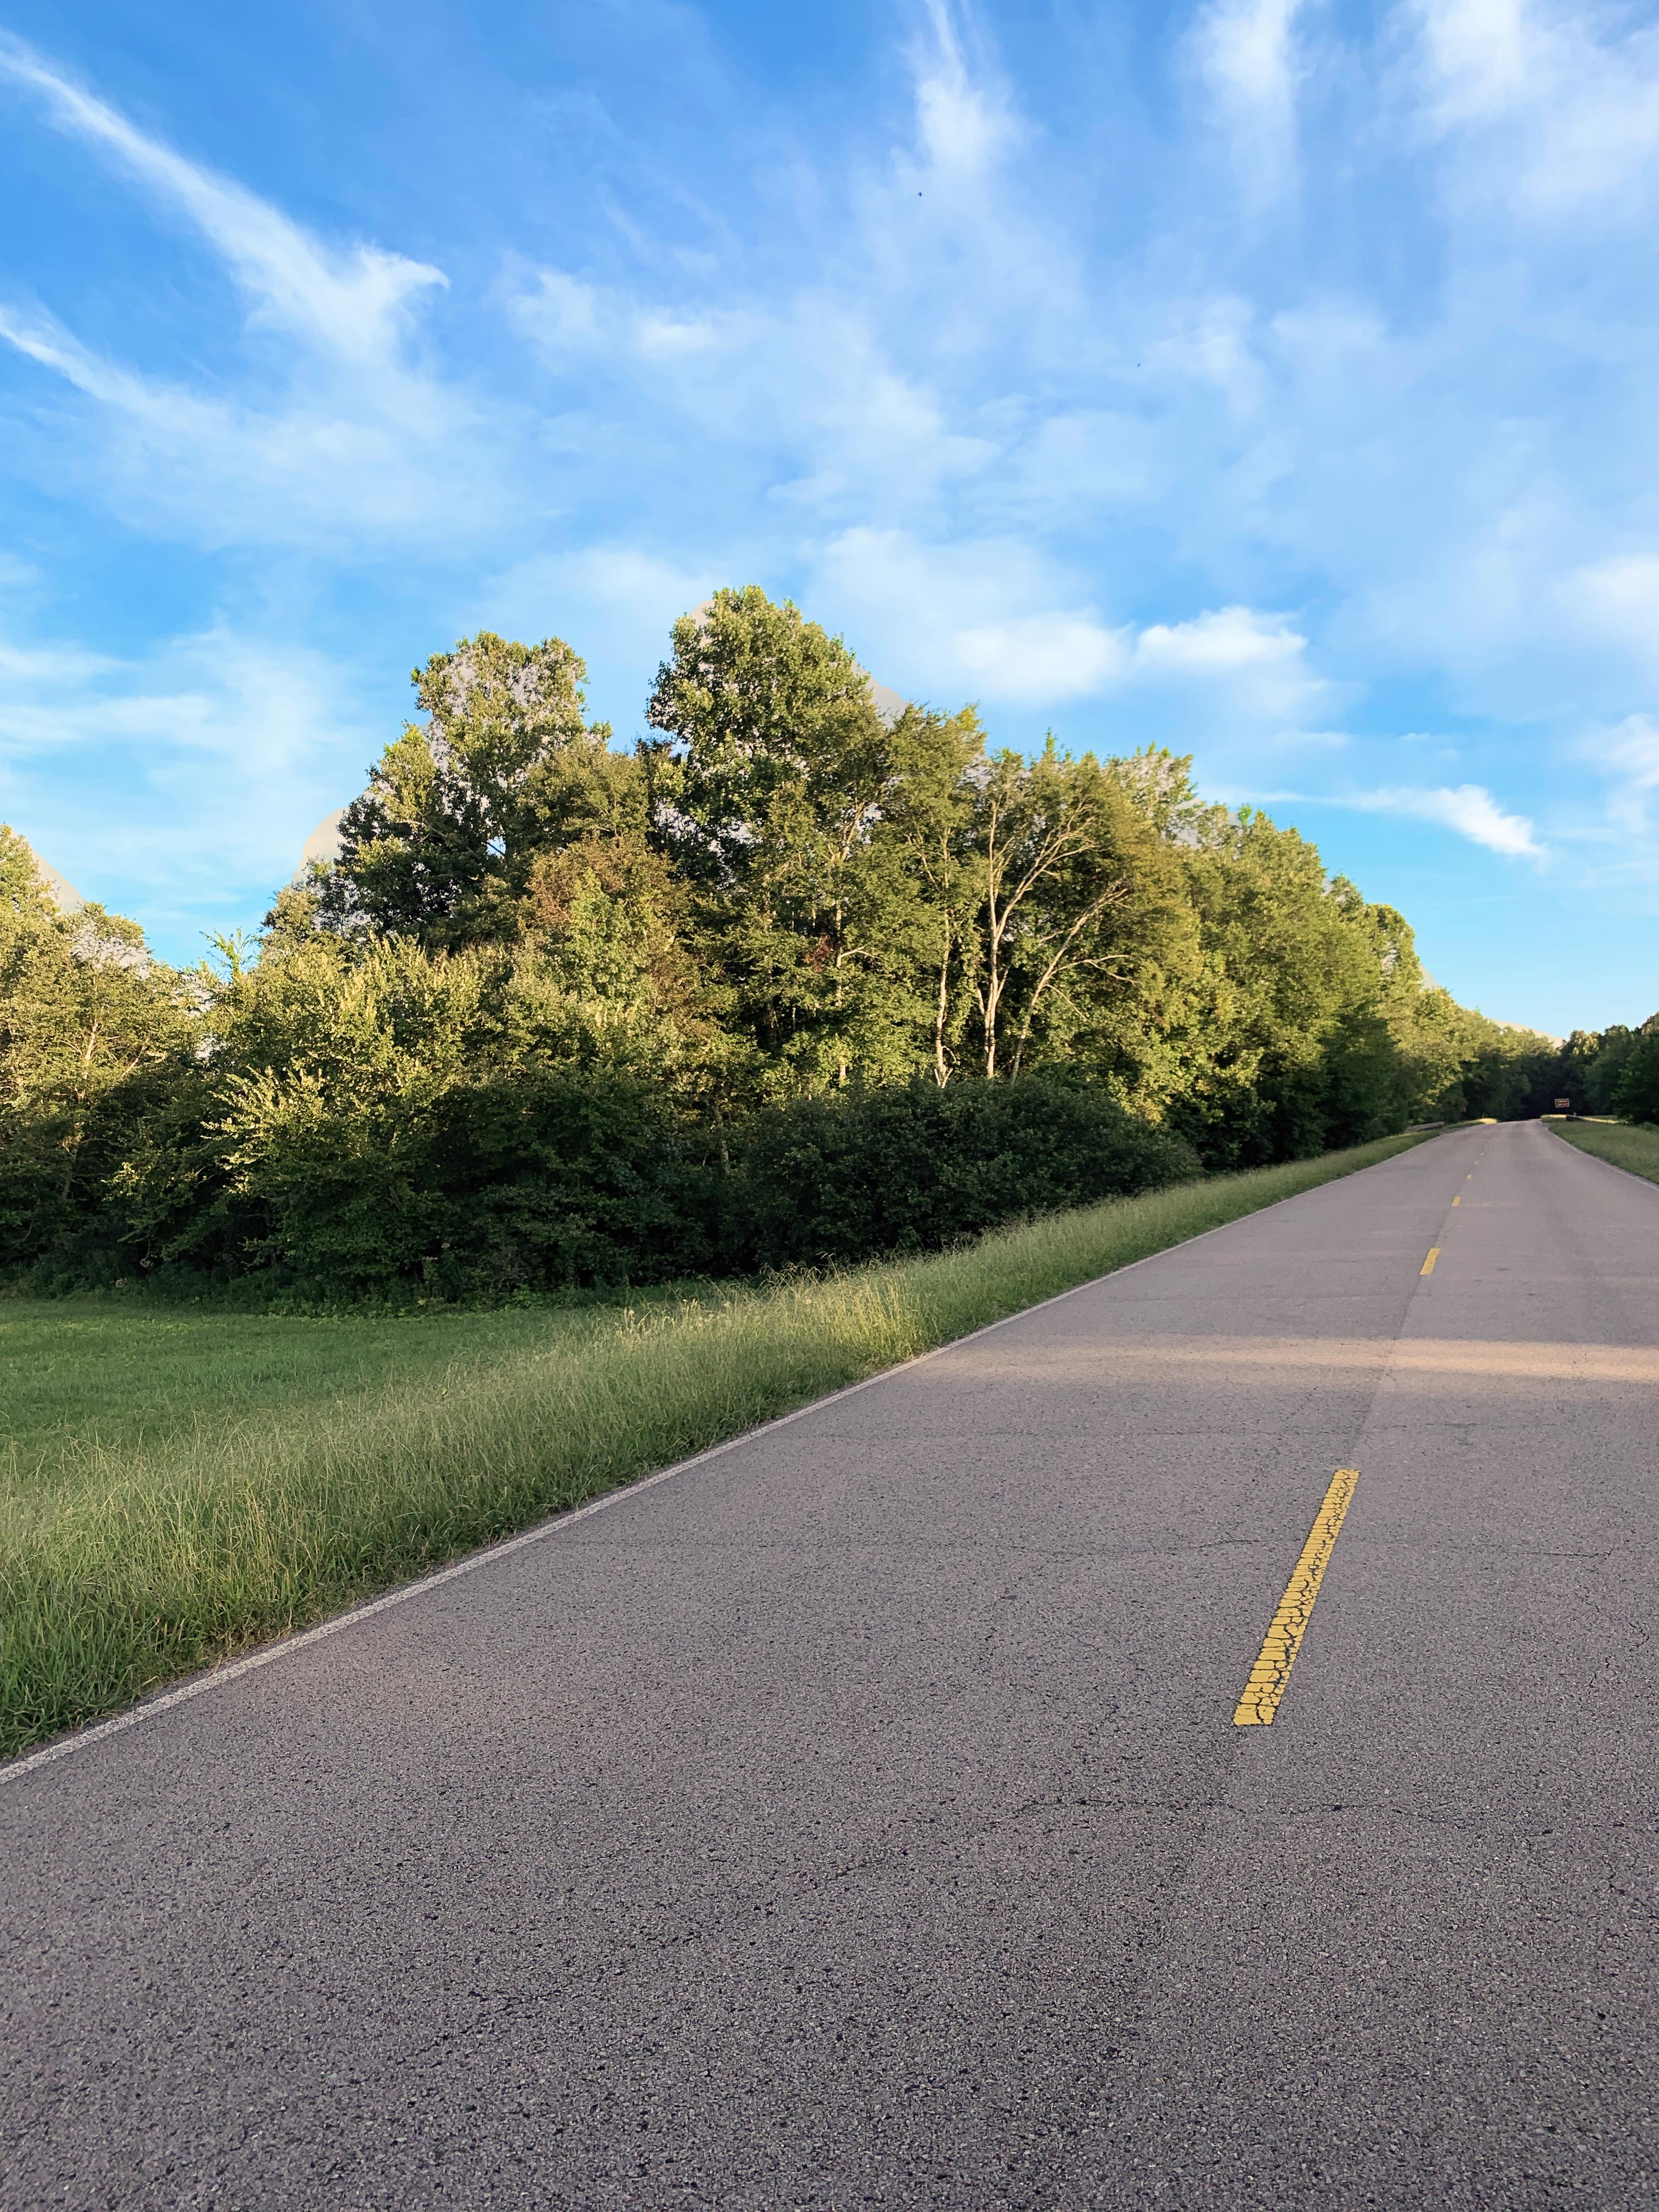 An image outside featuring a blue sky, two lane road, and green grass.